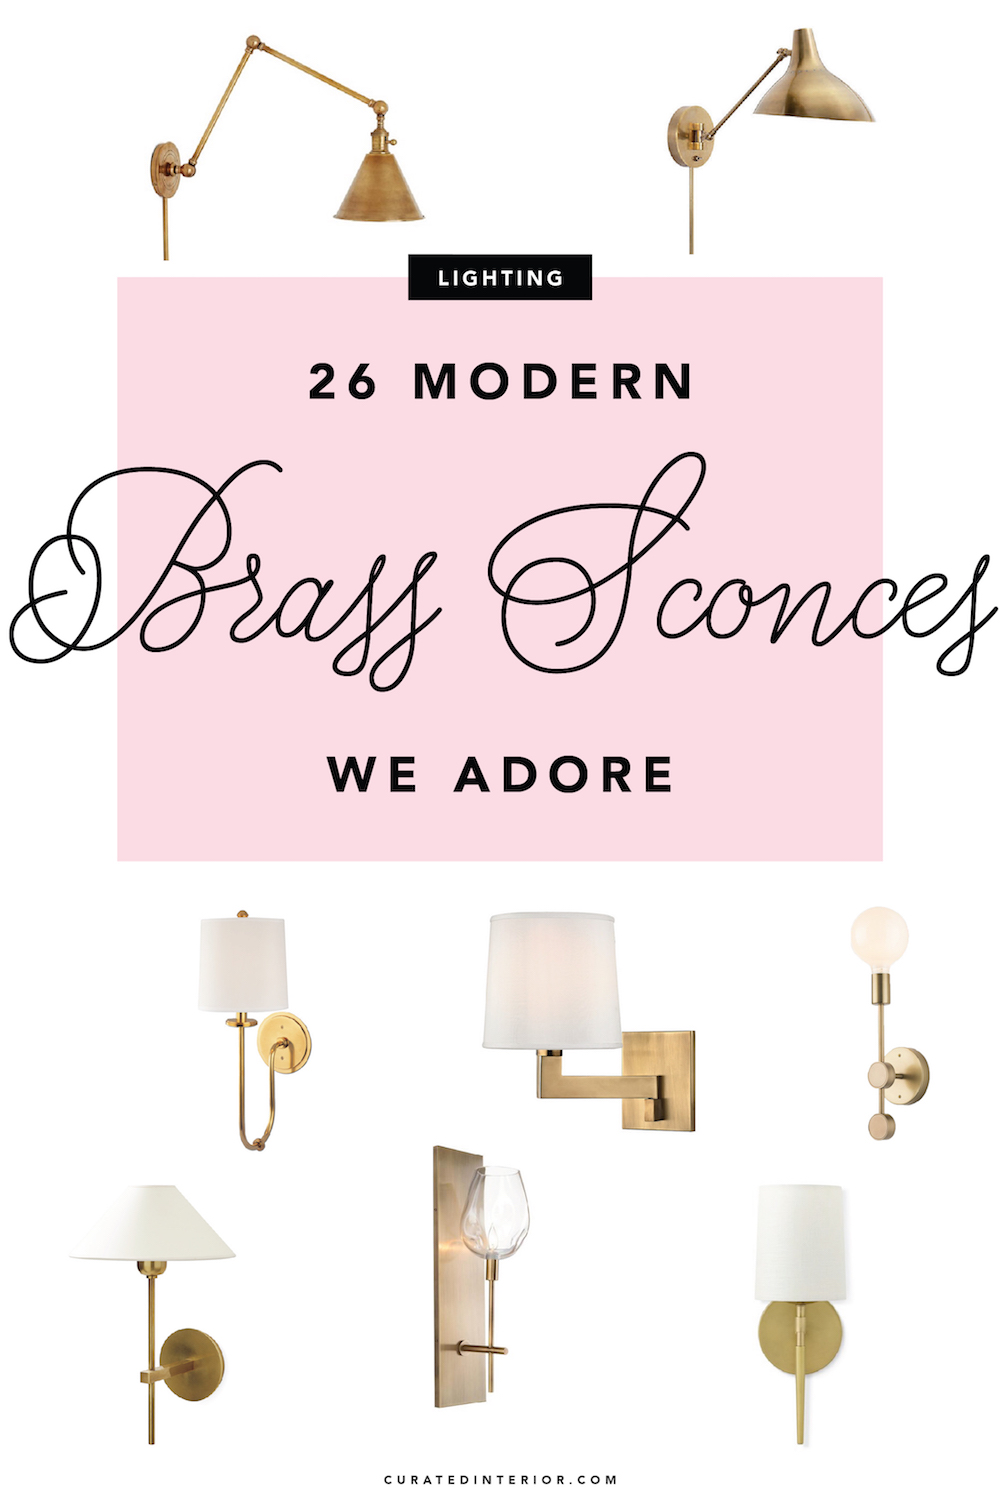 Modern Brass Sconces We Adore